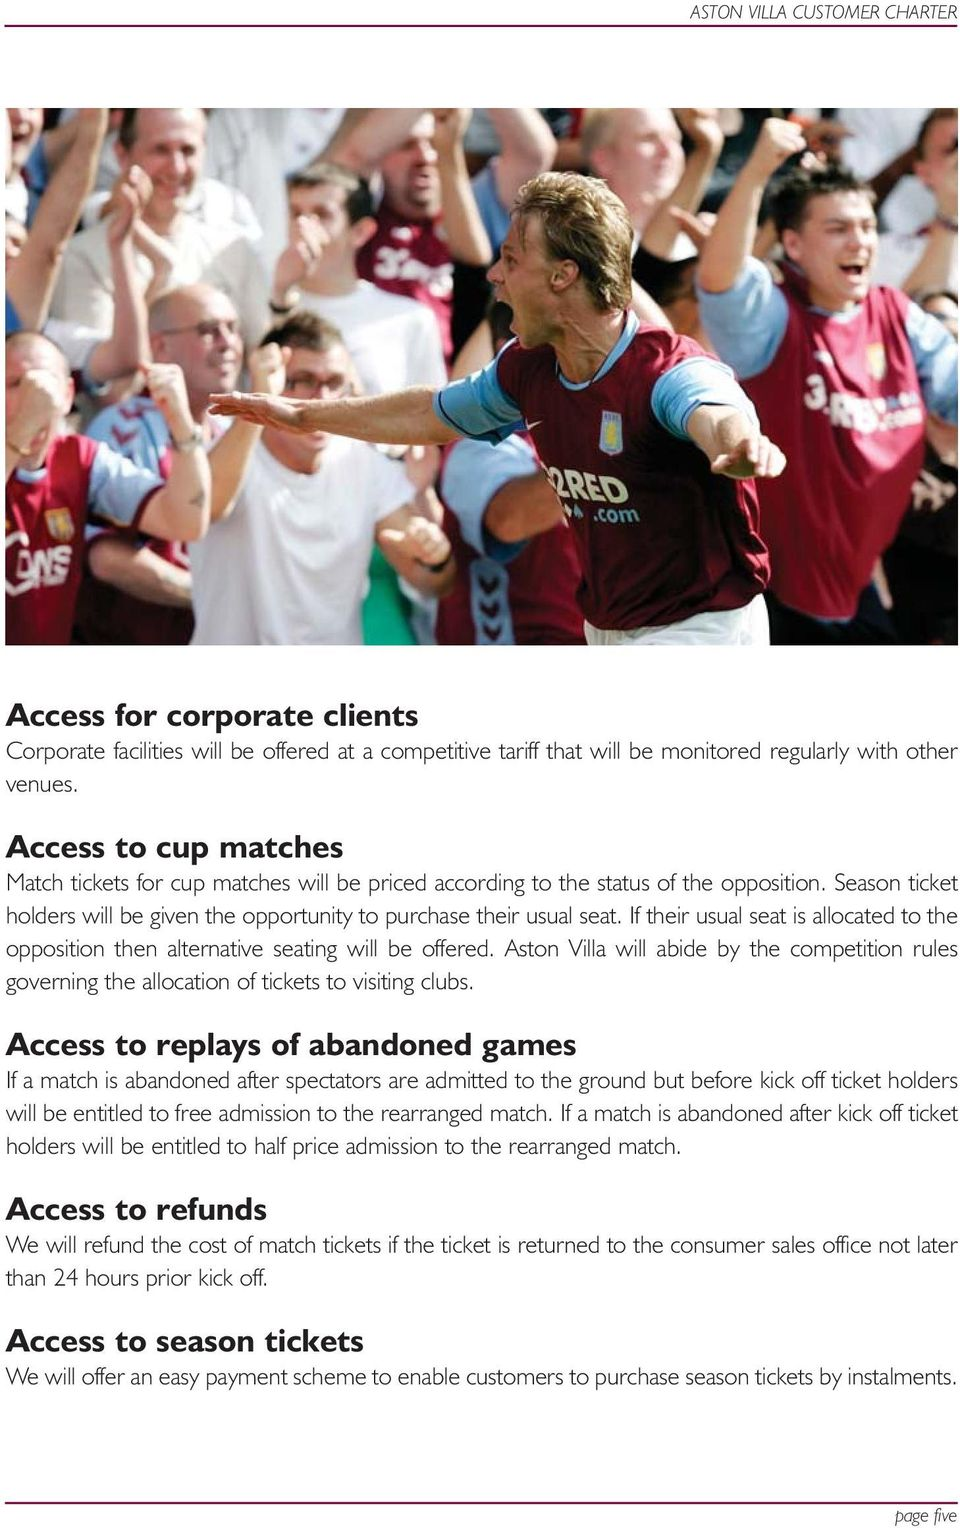 If their usual seat is allocated to the opposition then alternative seating will be offered. Aston Villa will abide by the competition rules governing the allocation of tickets to visiting clubs.